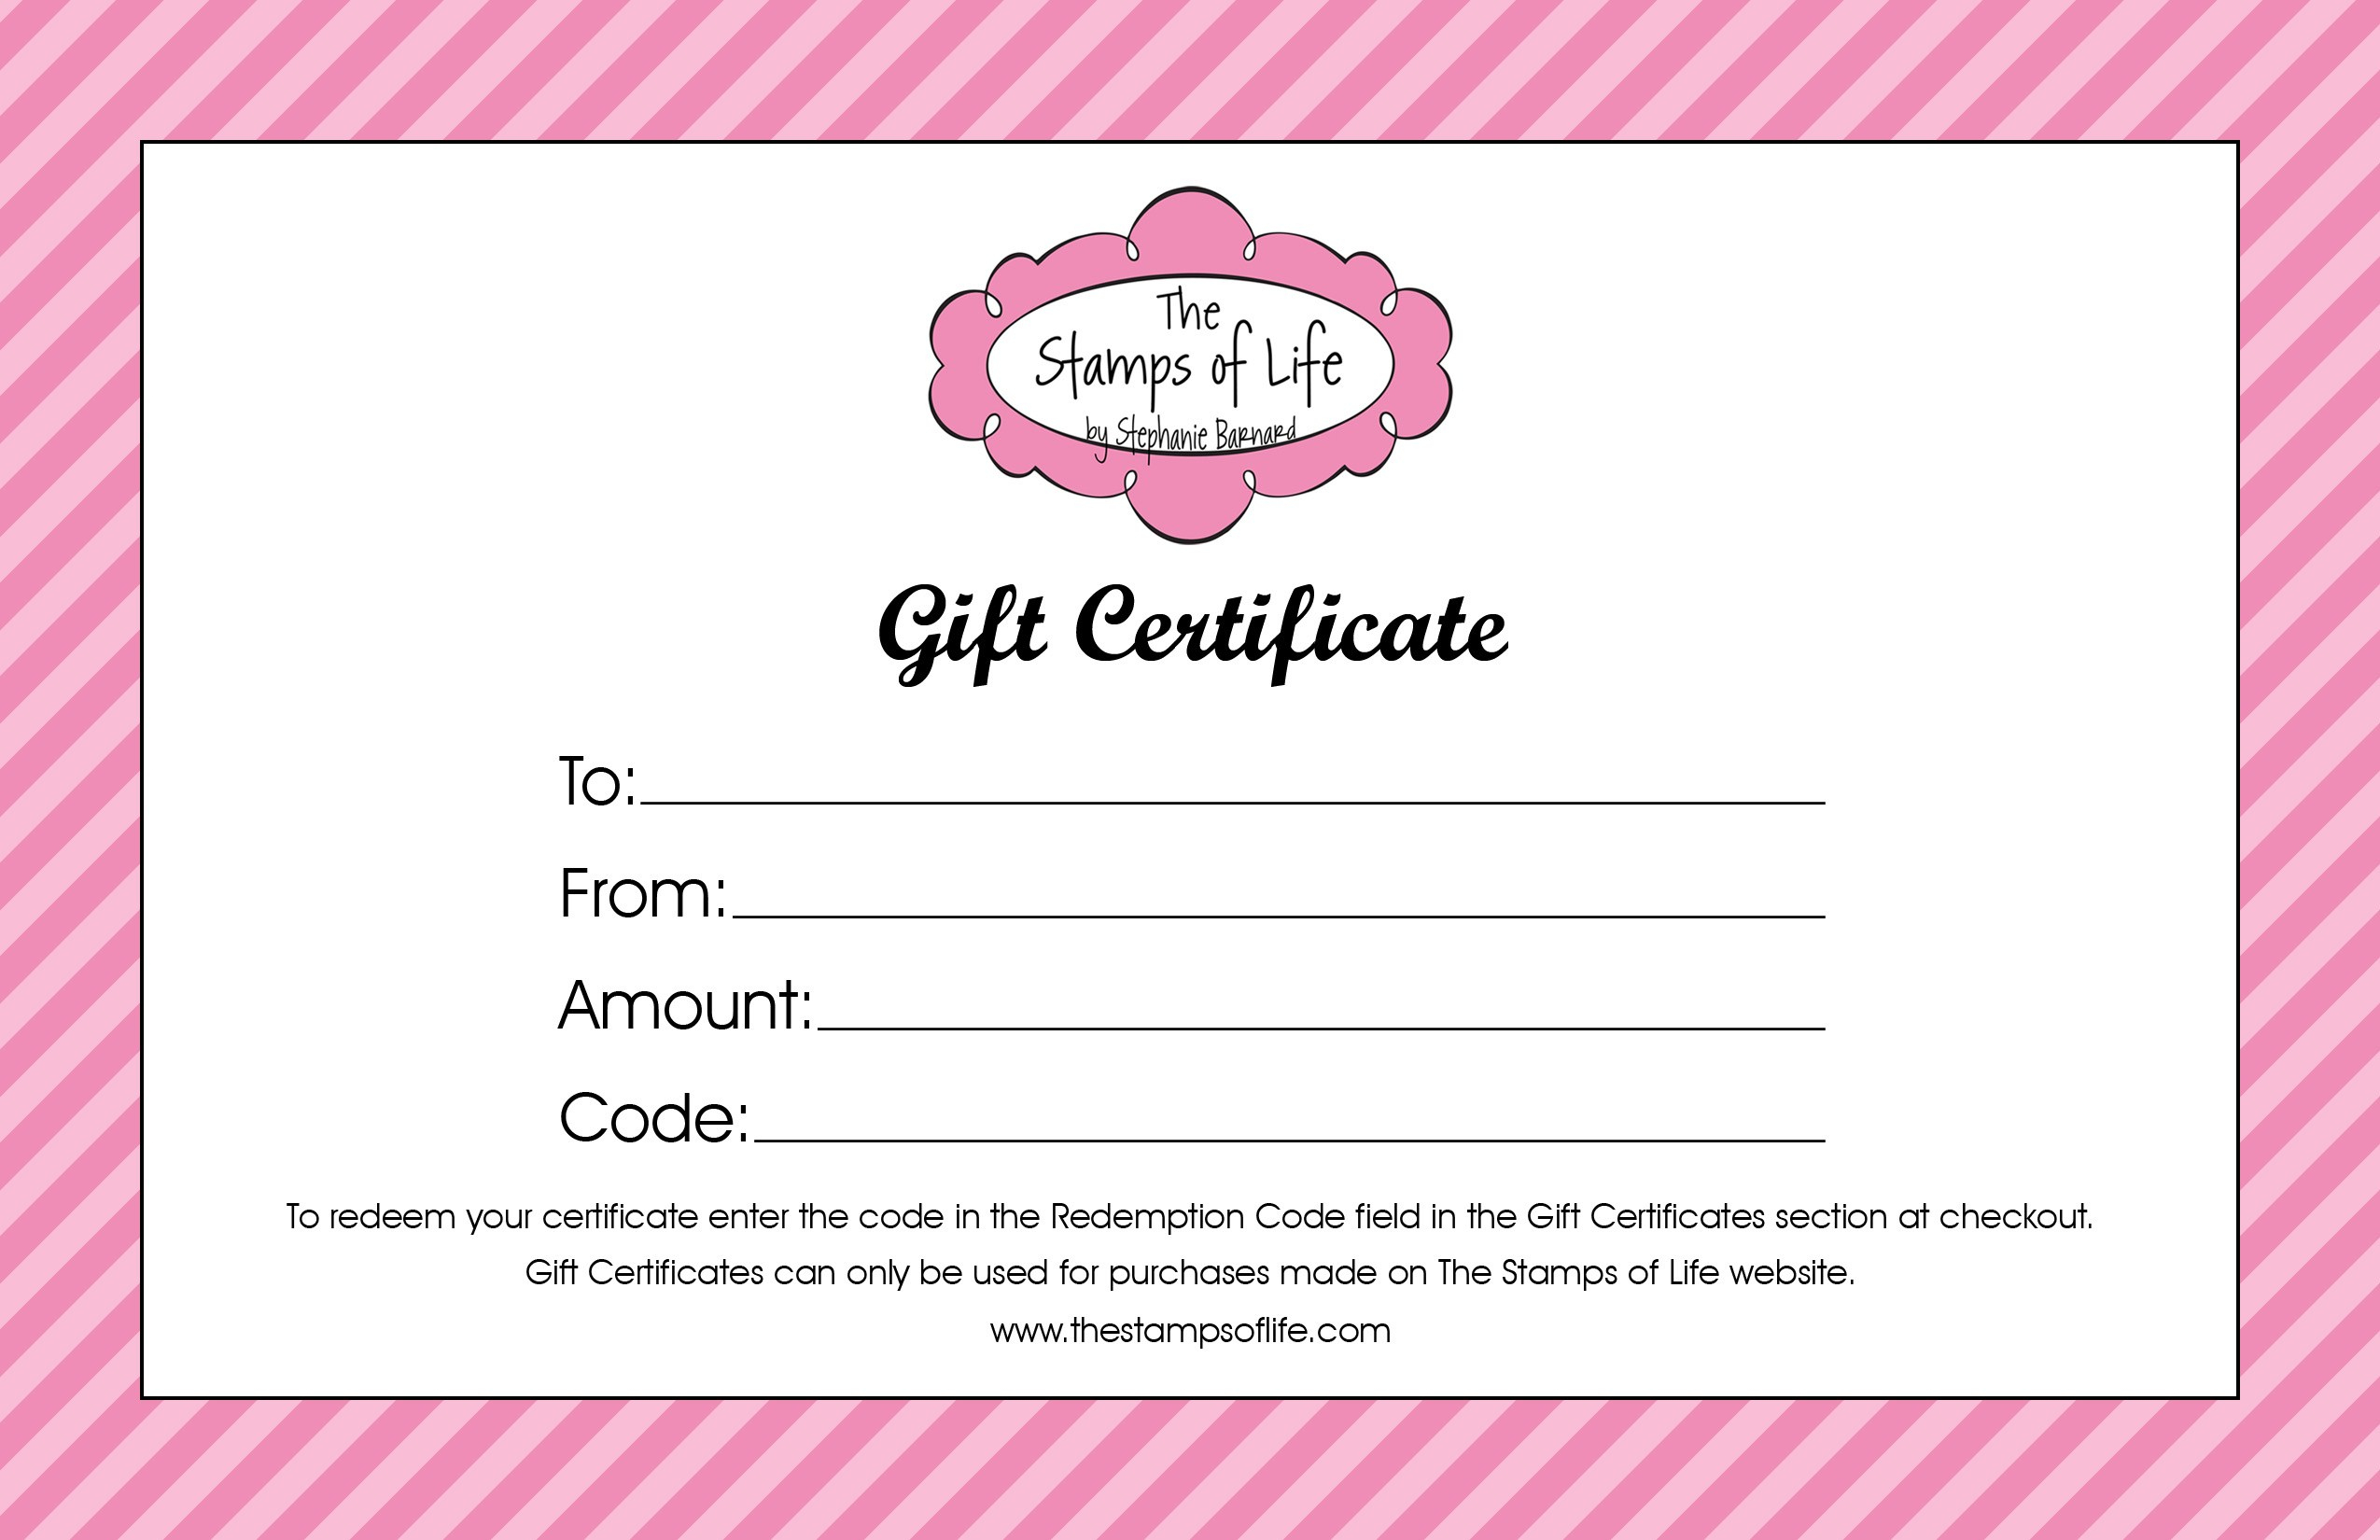 005 Free Gift Certificate Sample 641Fit25502C1650Ssl1 Template Ideas - Free Printable Gift Certificates For Hair Salon